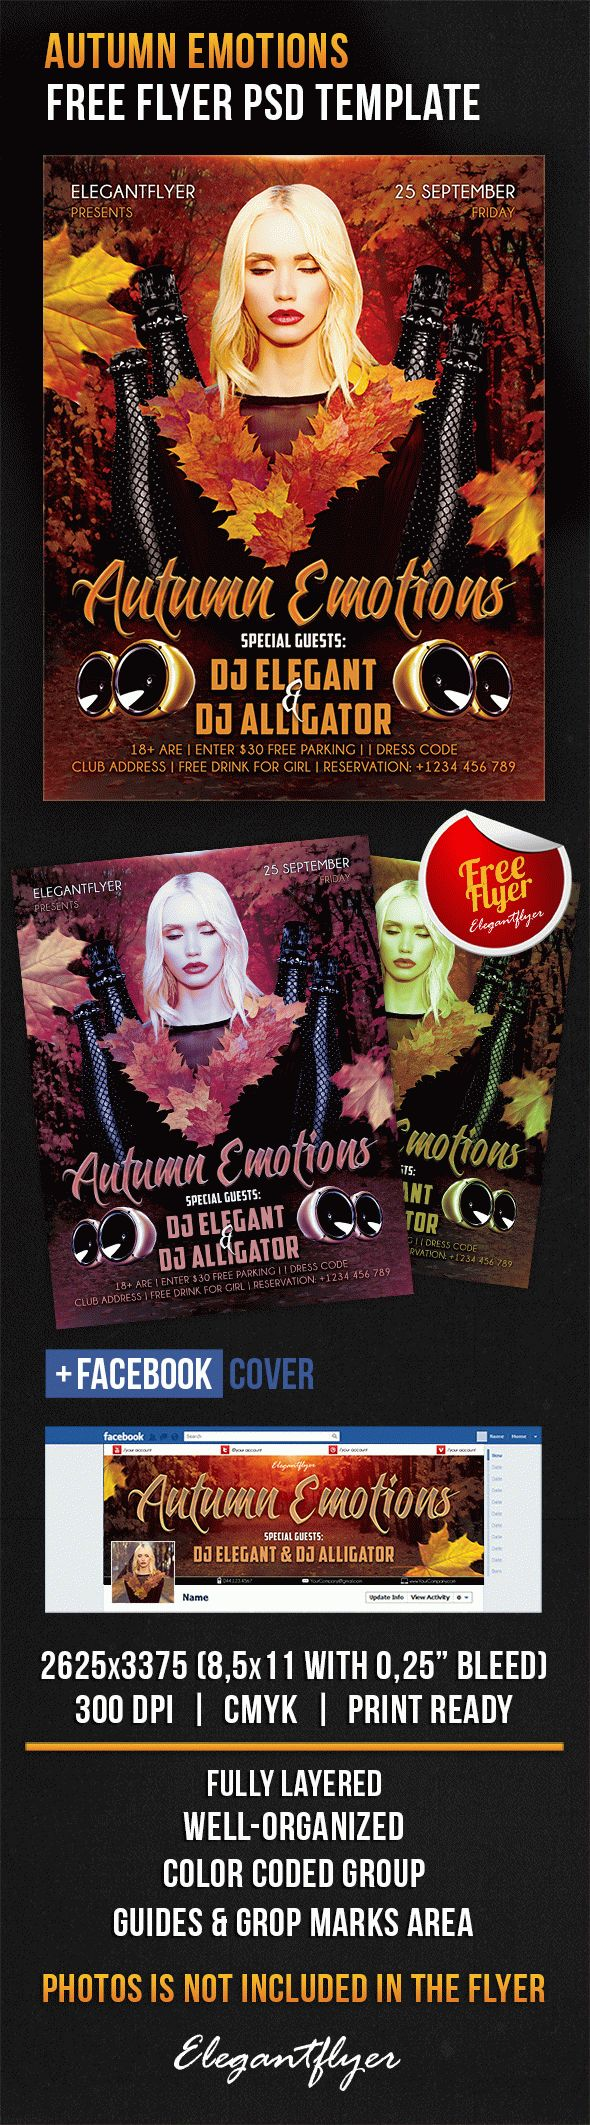 Autumn Emotions – Free Flyer PSD Template